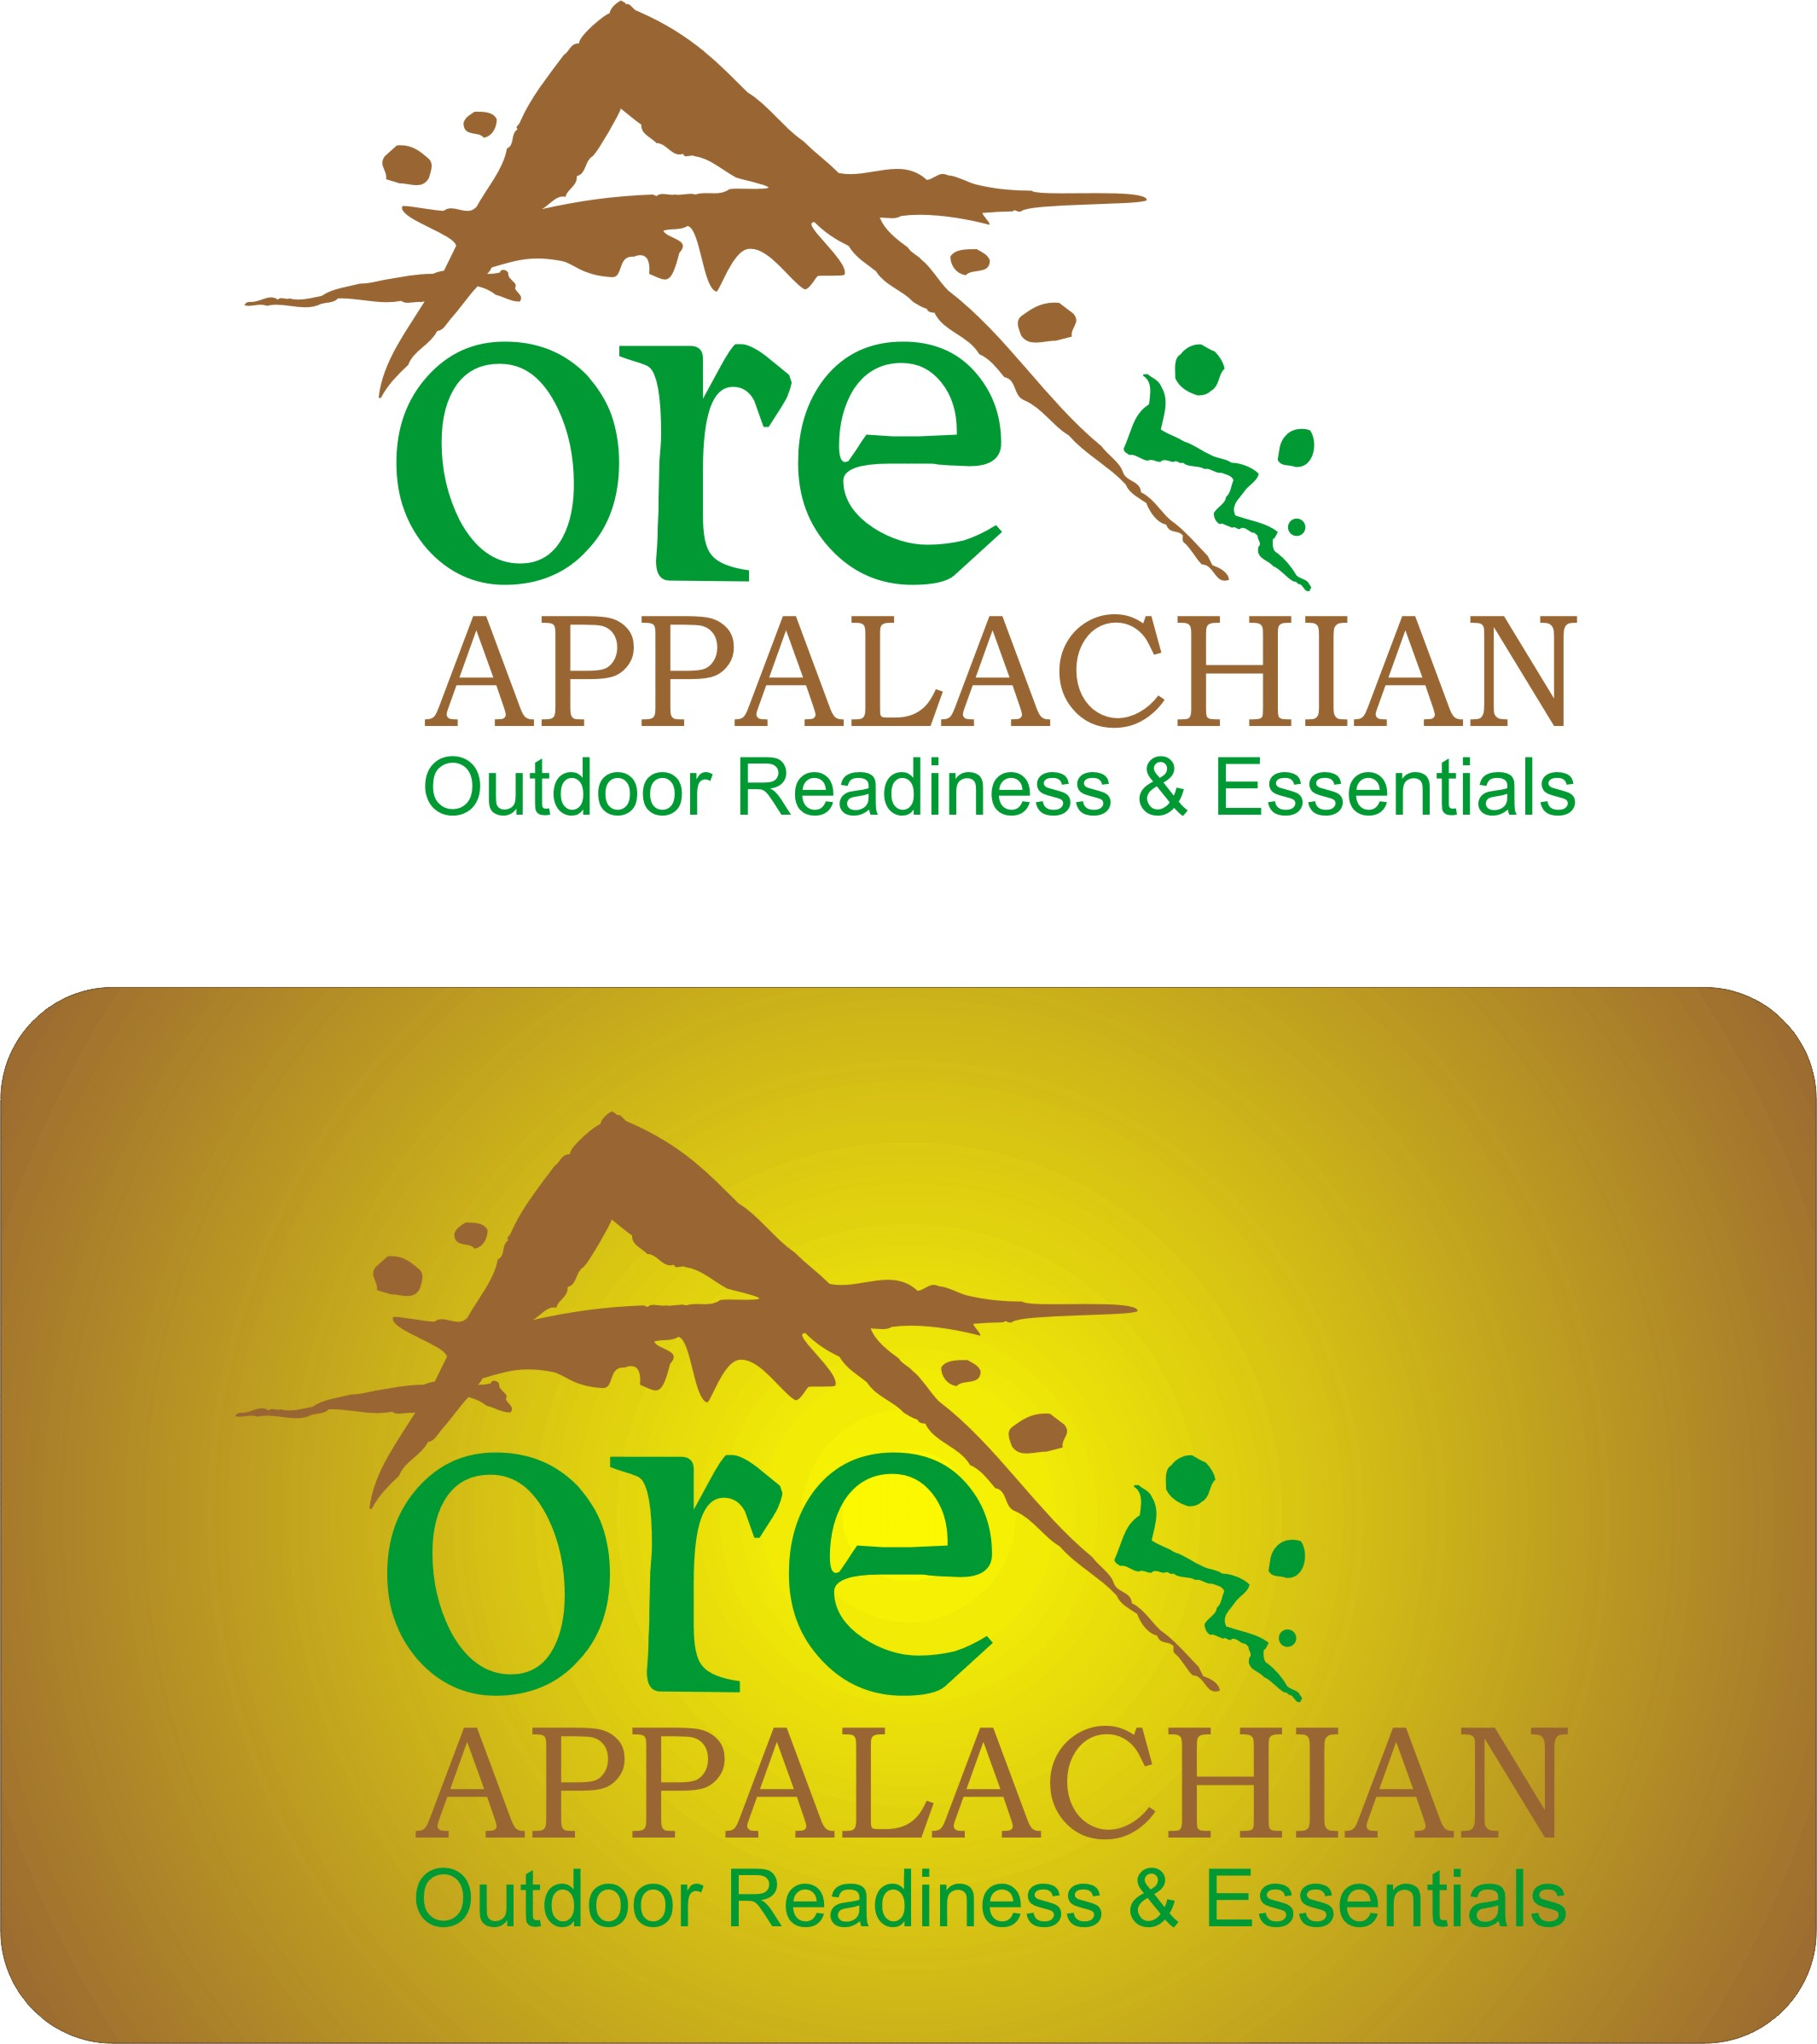 Logo Design by Korsunov Oleg - Entry No. 18 in the Logo Design Contest Imaginative Logo Design for Appalachian Outdoor Readiness & Essentials.